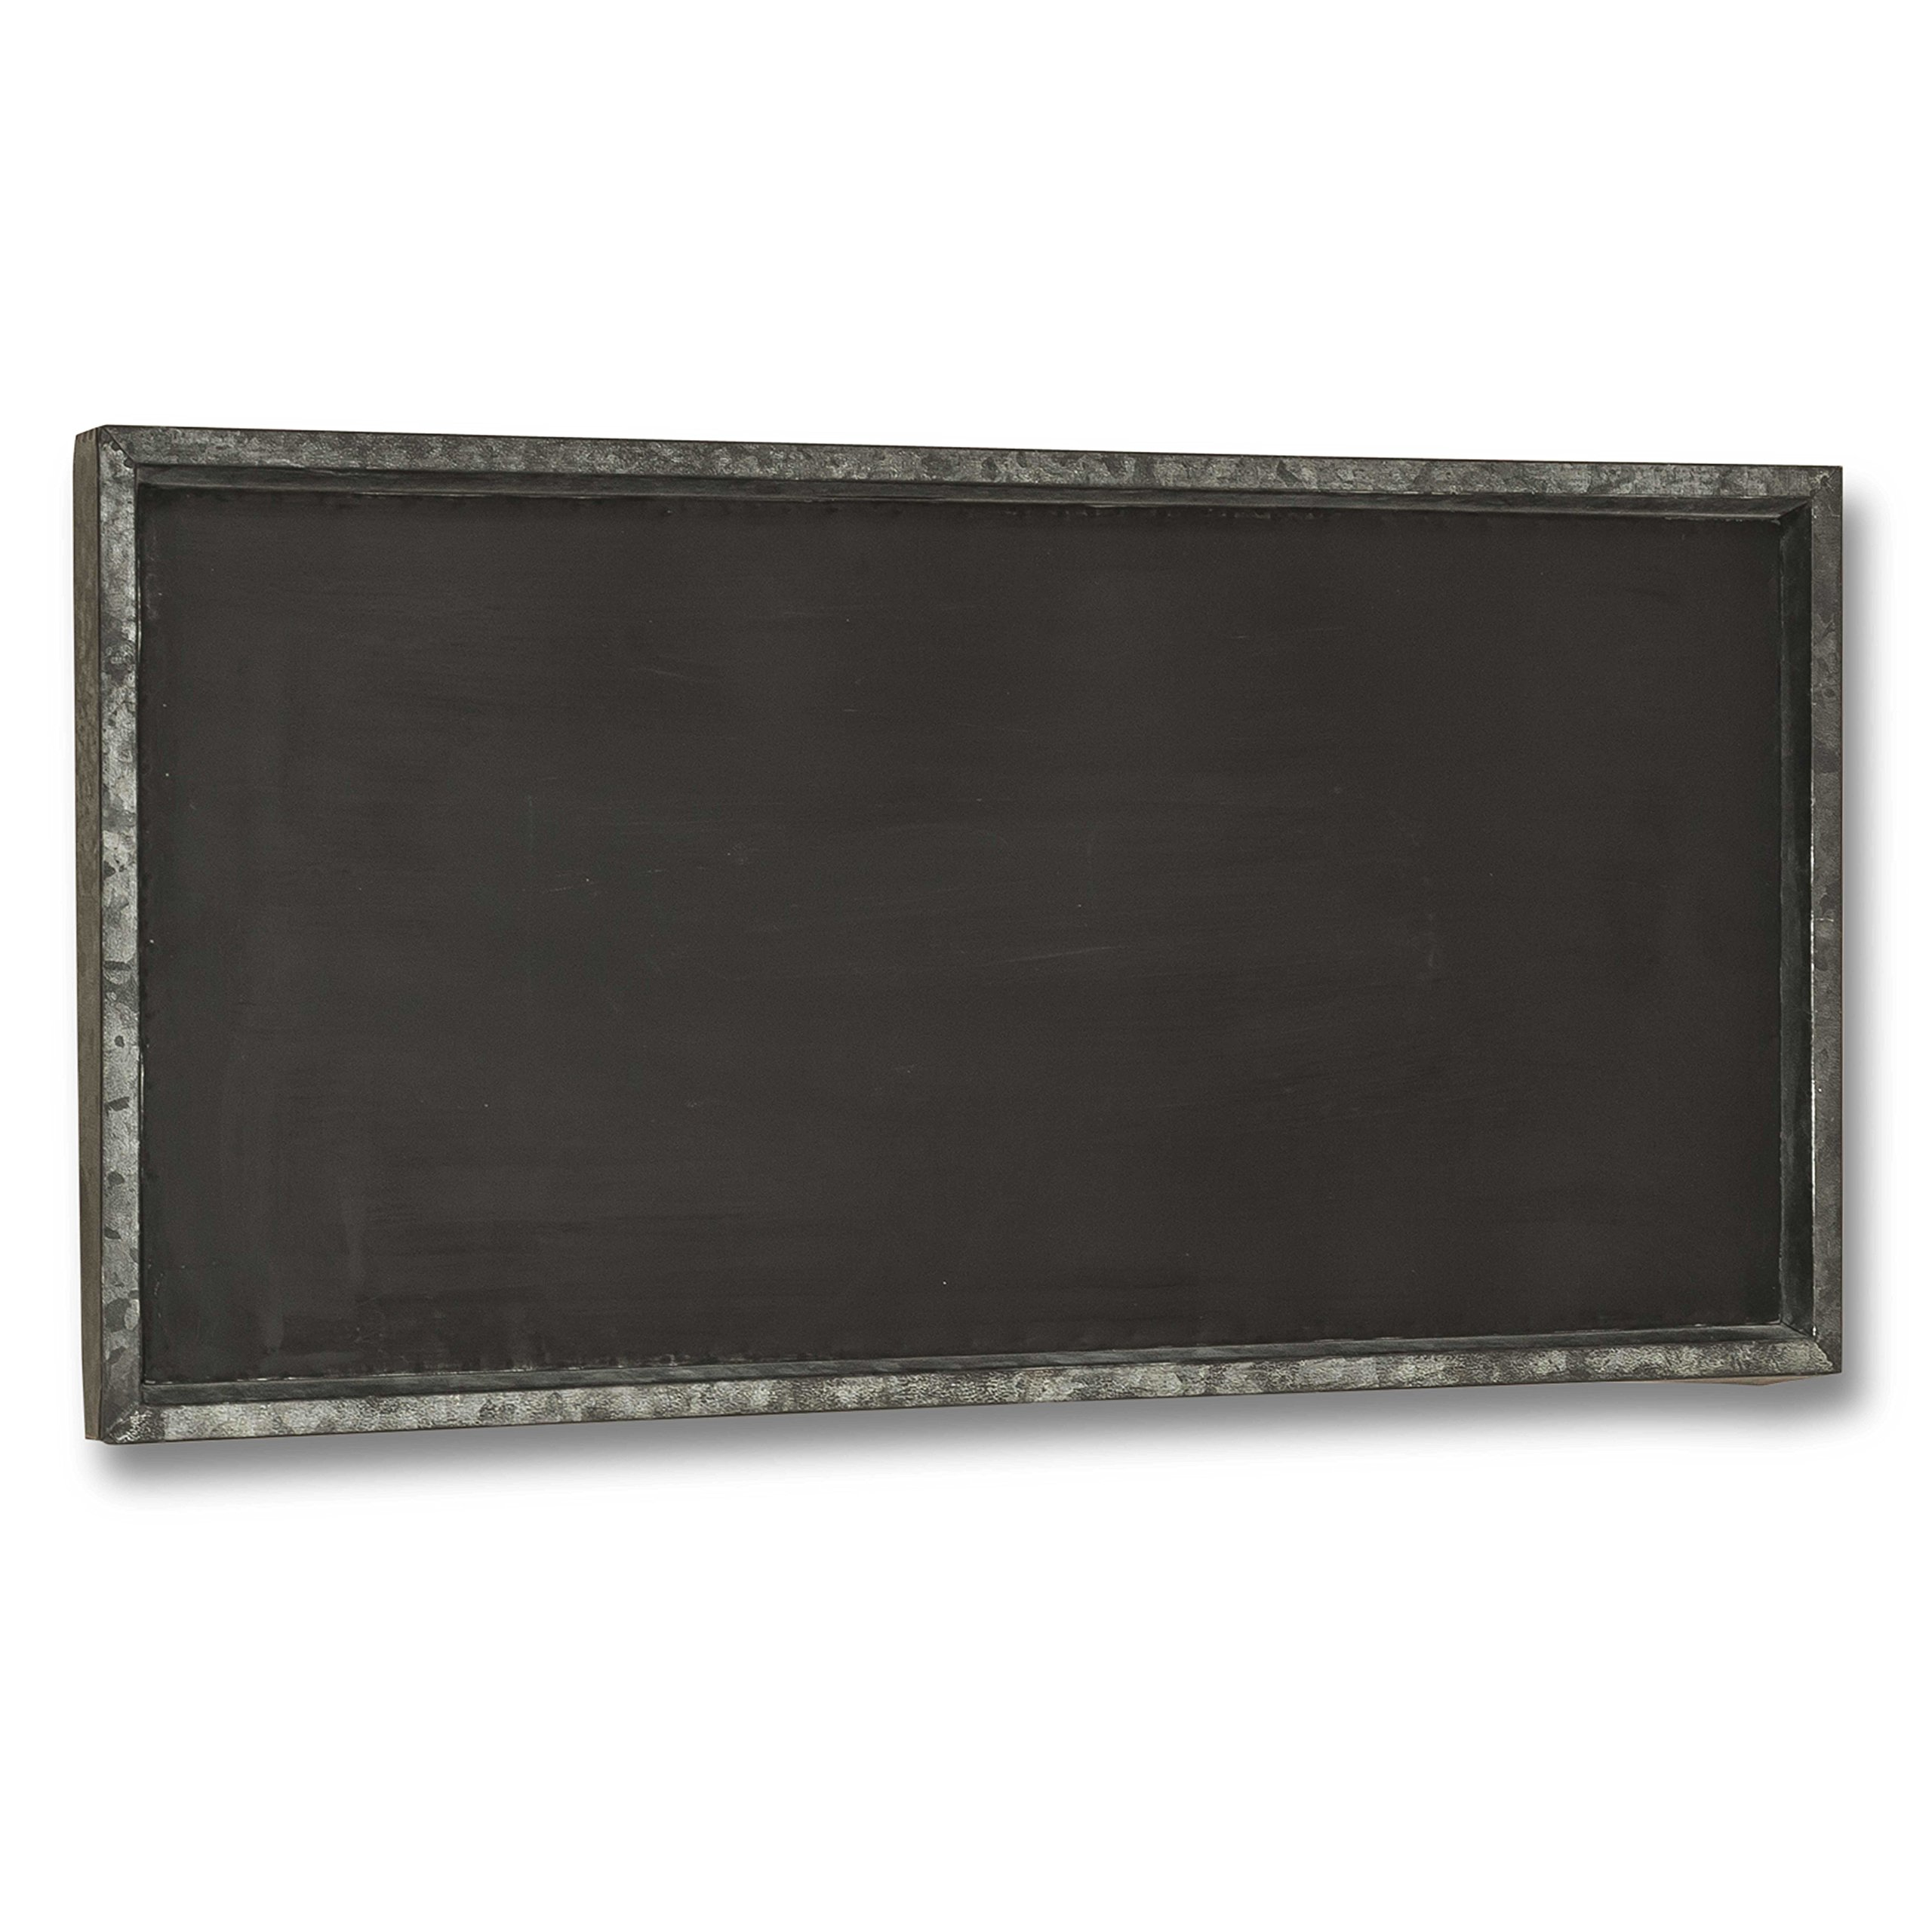 Rustic Galvanized Zinc Framed Magnetic Wall Chalkboard, Large Size Over 2 1/2 Feet, (15 x 29 1/2 Inches) Vertical or Horizontal Hanging Options, Great for Kitchen, Weddings, Restaurant Menus, and More